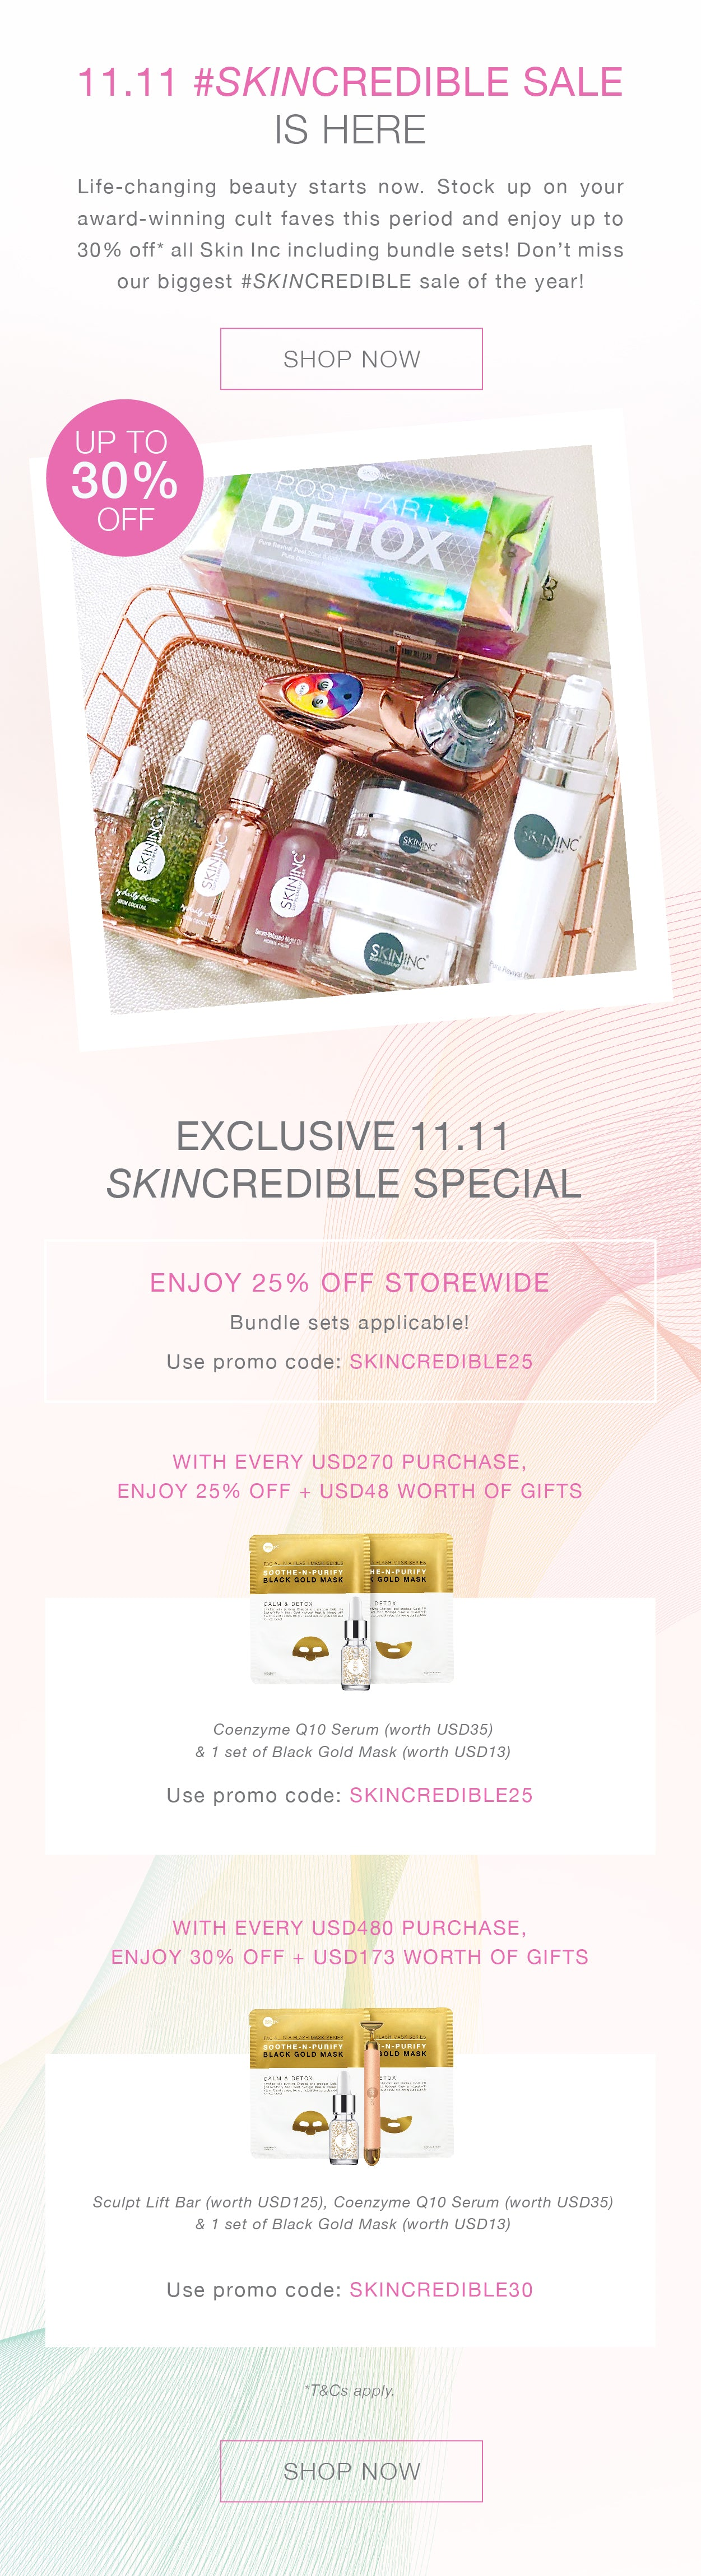 11.11 Skincredible sale 2